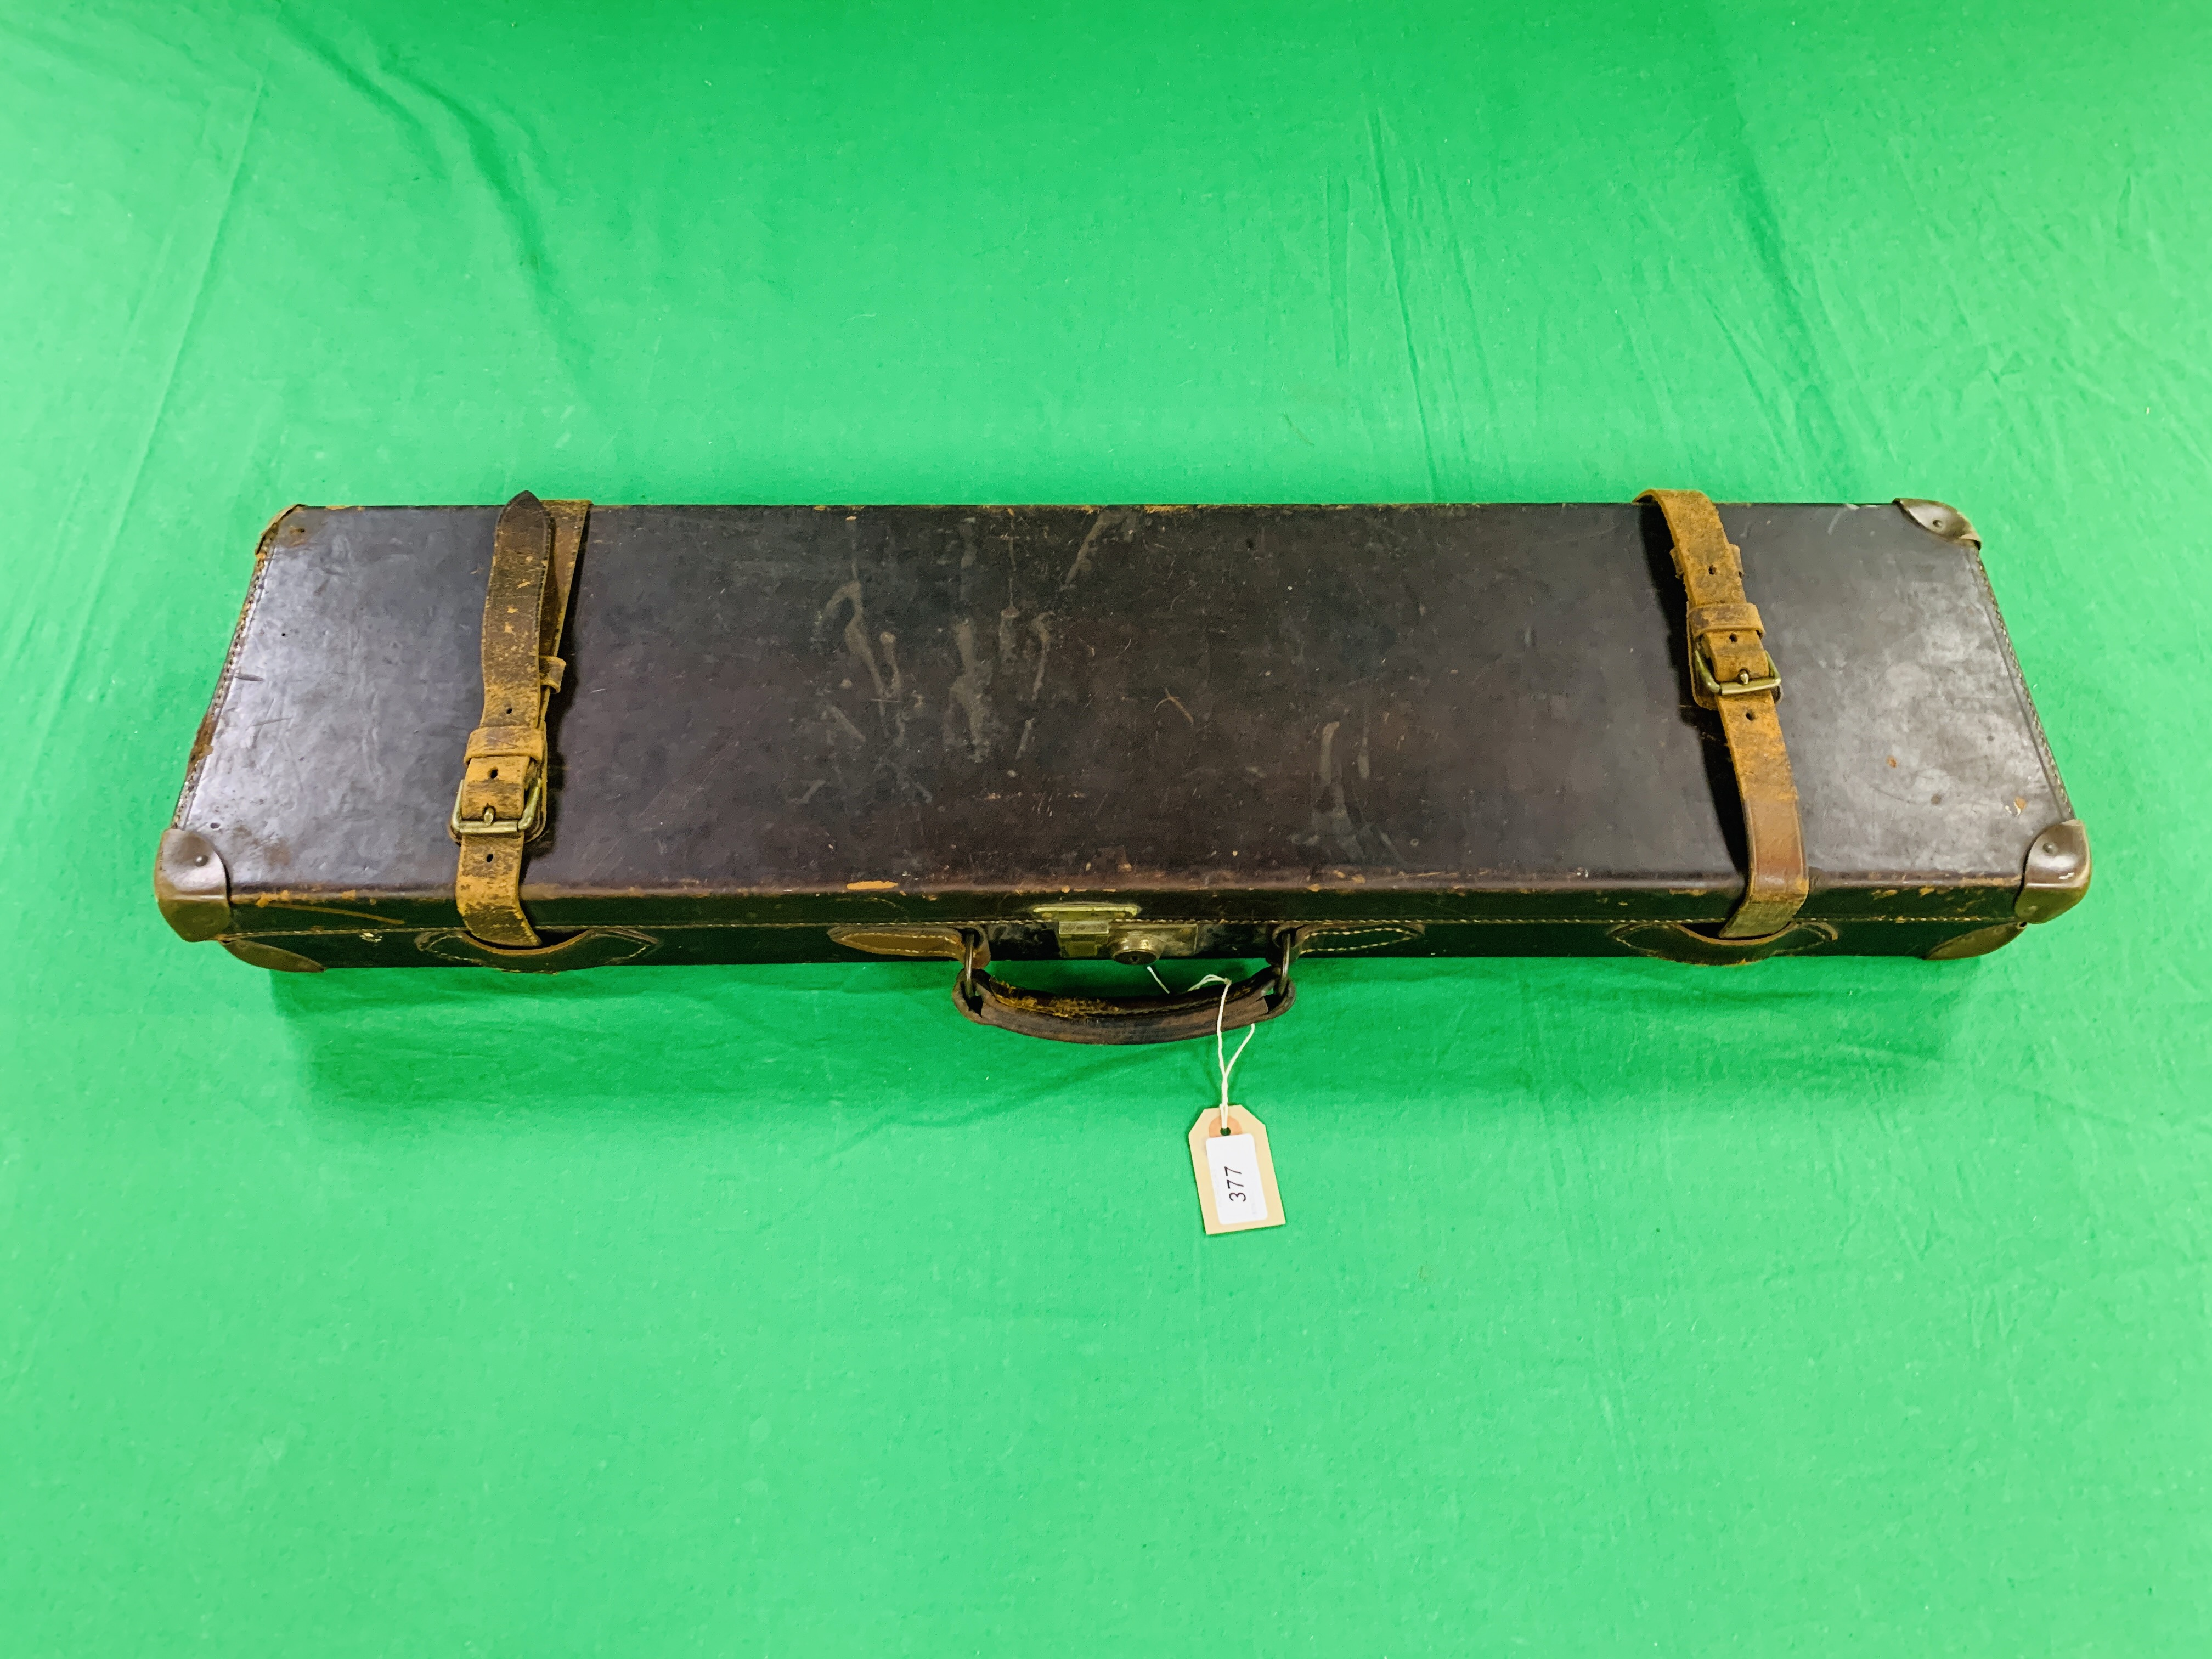 """BEST LEATHER 30"""" SIDE BY SIDE GUN CASE WITH W.W. - Image 10 of 10"""